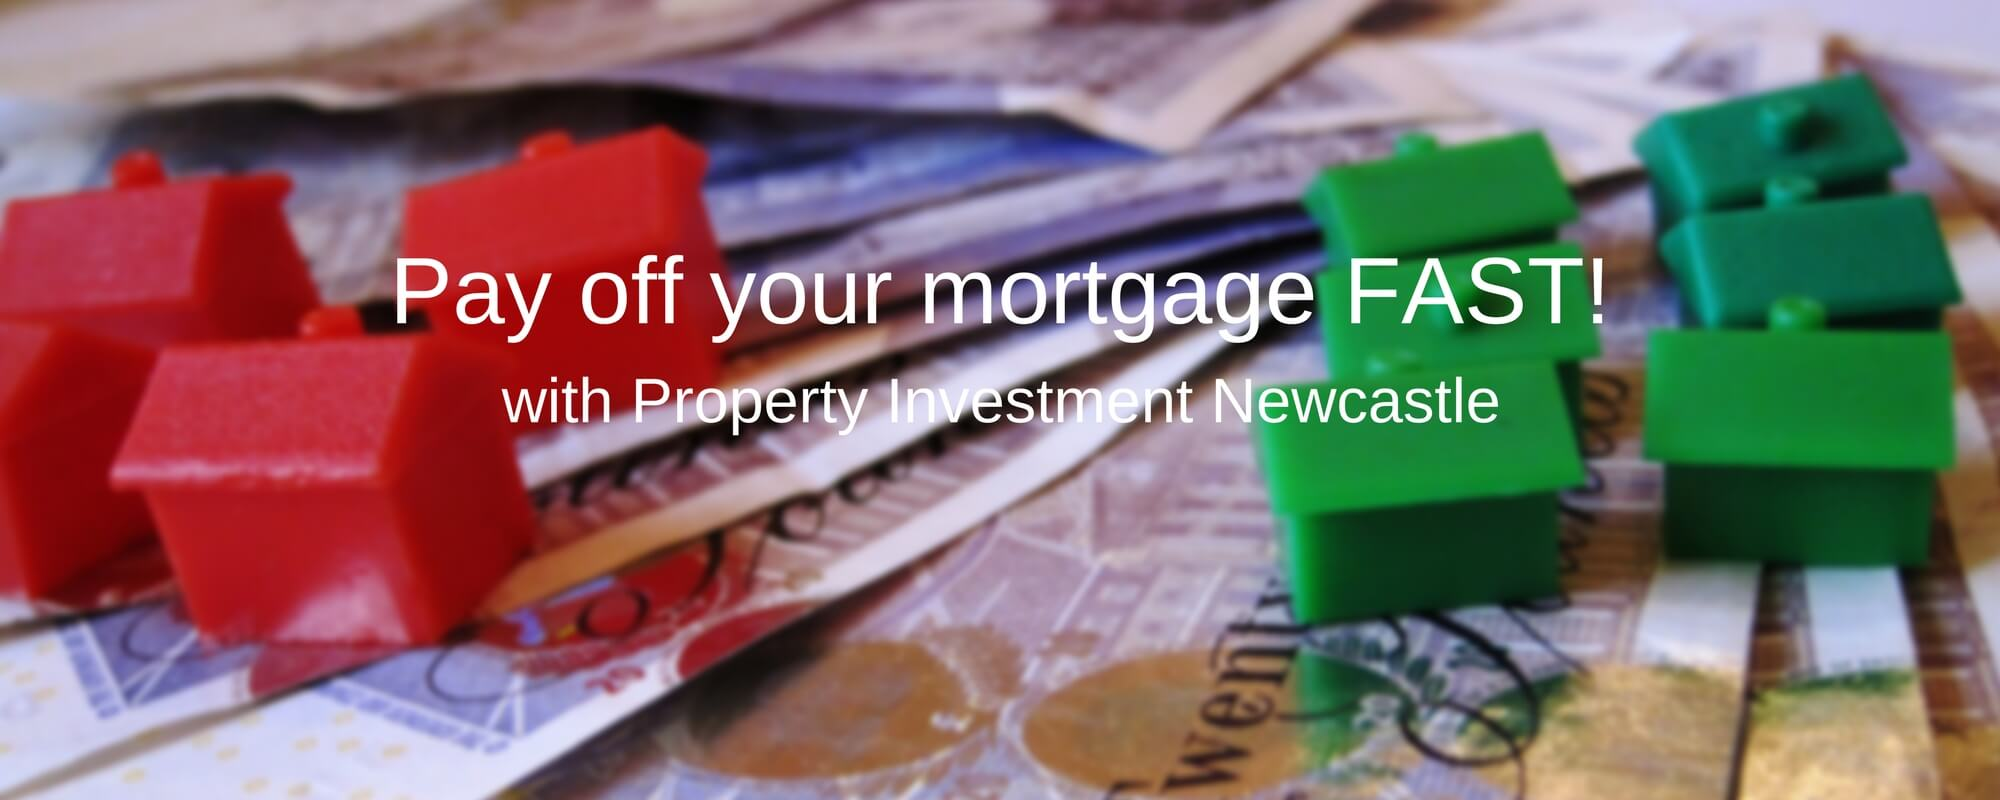 Property Investment Newcastle Banner